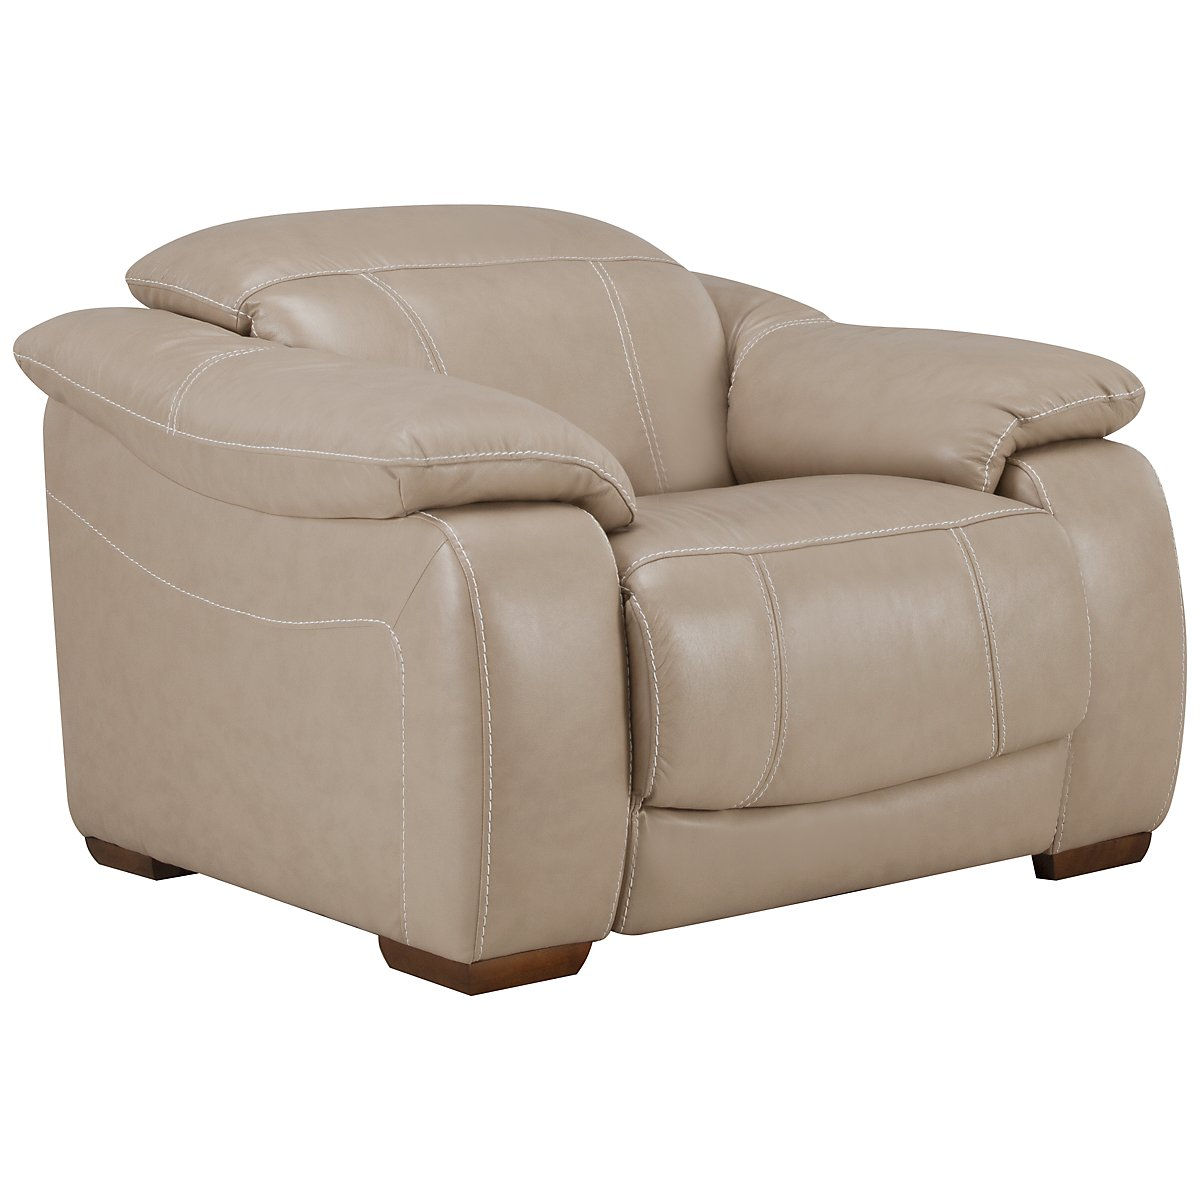 Orion Light Taupe Leather & Bonded Leather Recliner